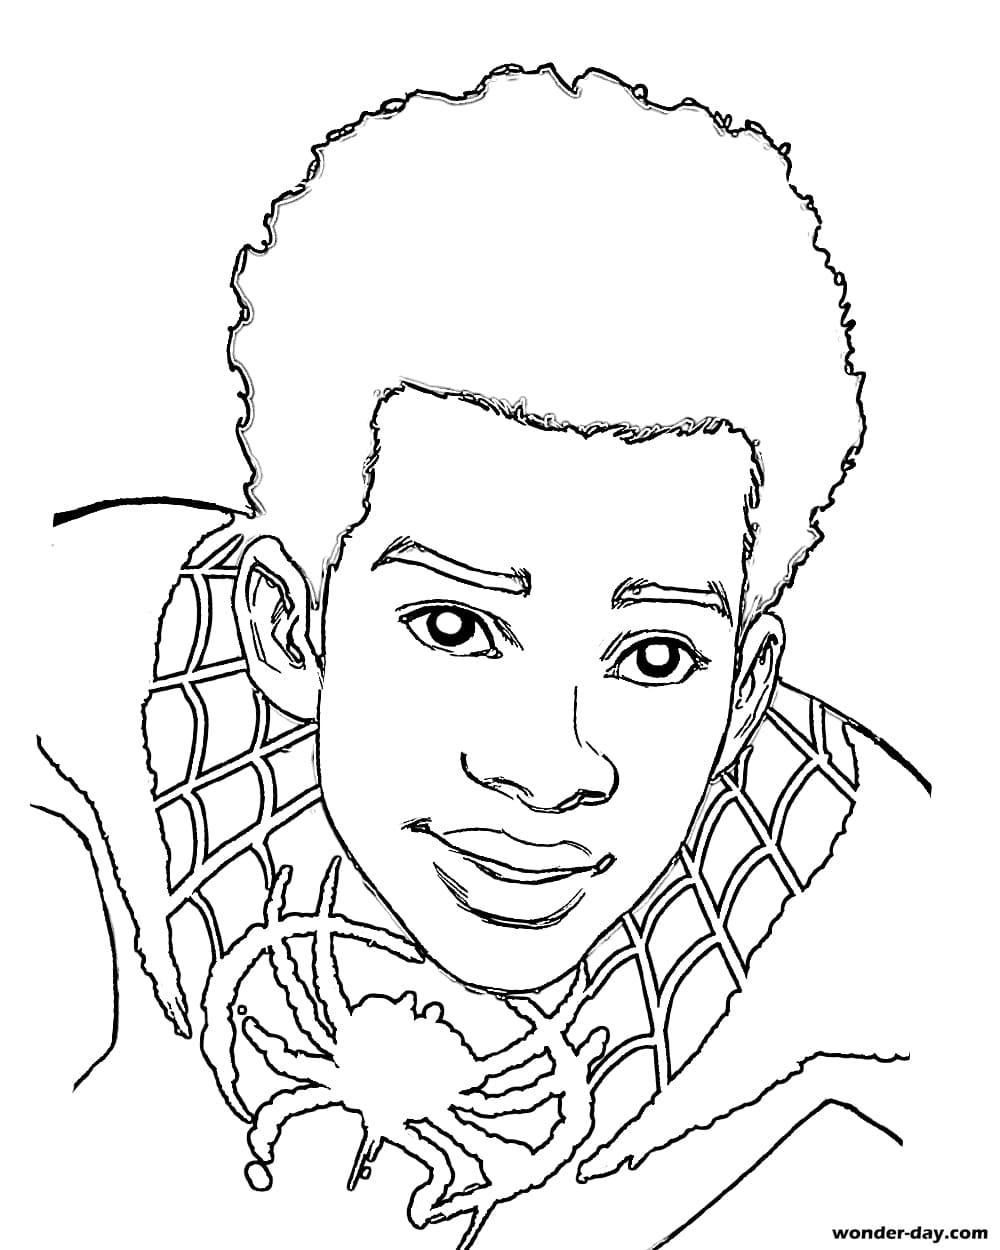 miles morales spiderman coloring page miles morales coloring pages collection whitesbelfast coloring morales page spiderman miles